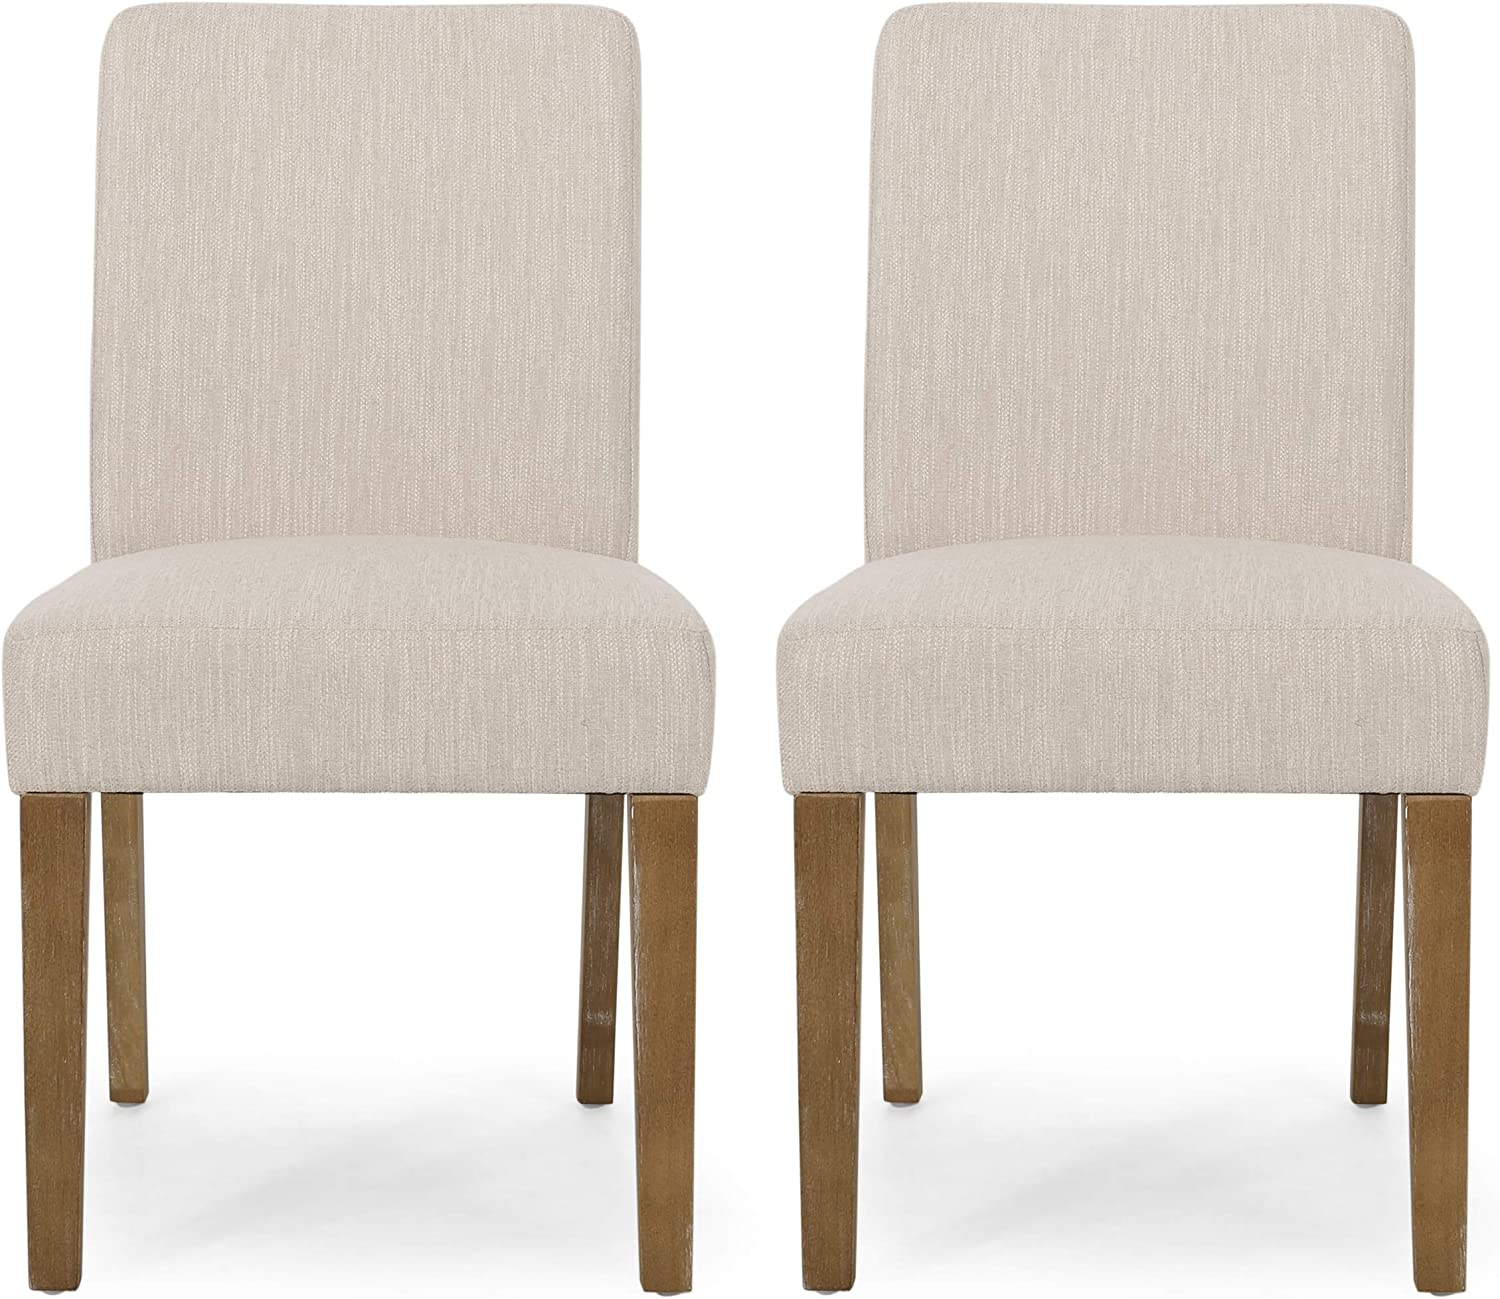 Christopher Knight Home Kuna Contemporary Upholstered Dining Chair (Set of 2), Beige + Weathered Brown